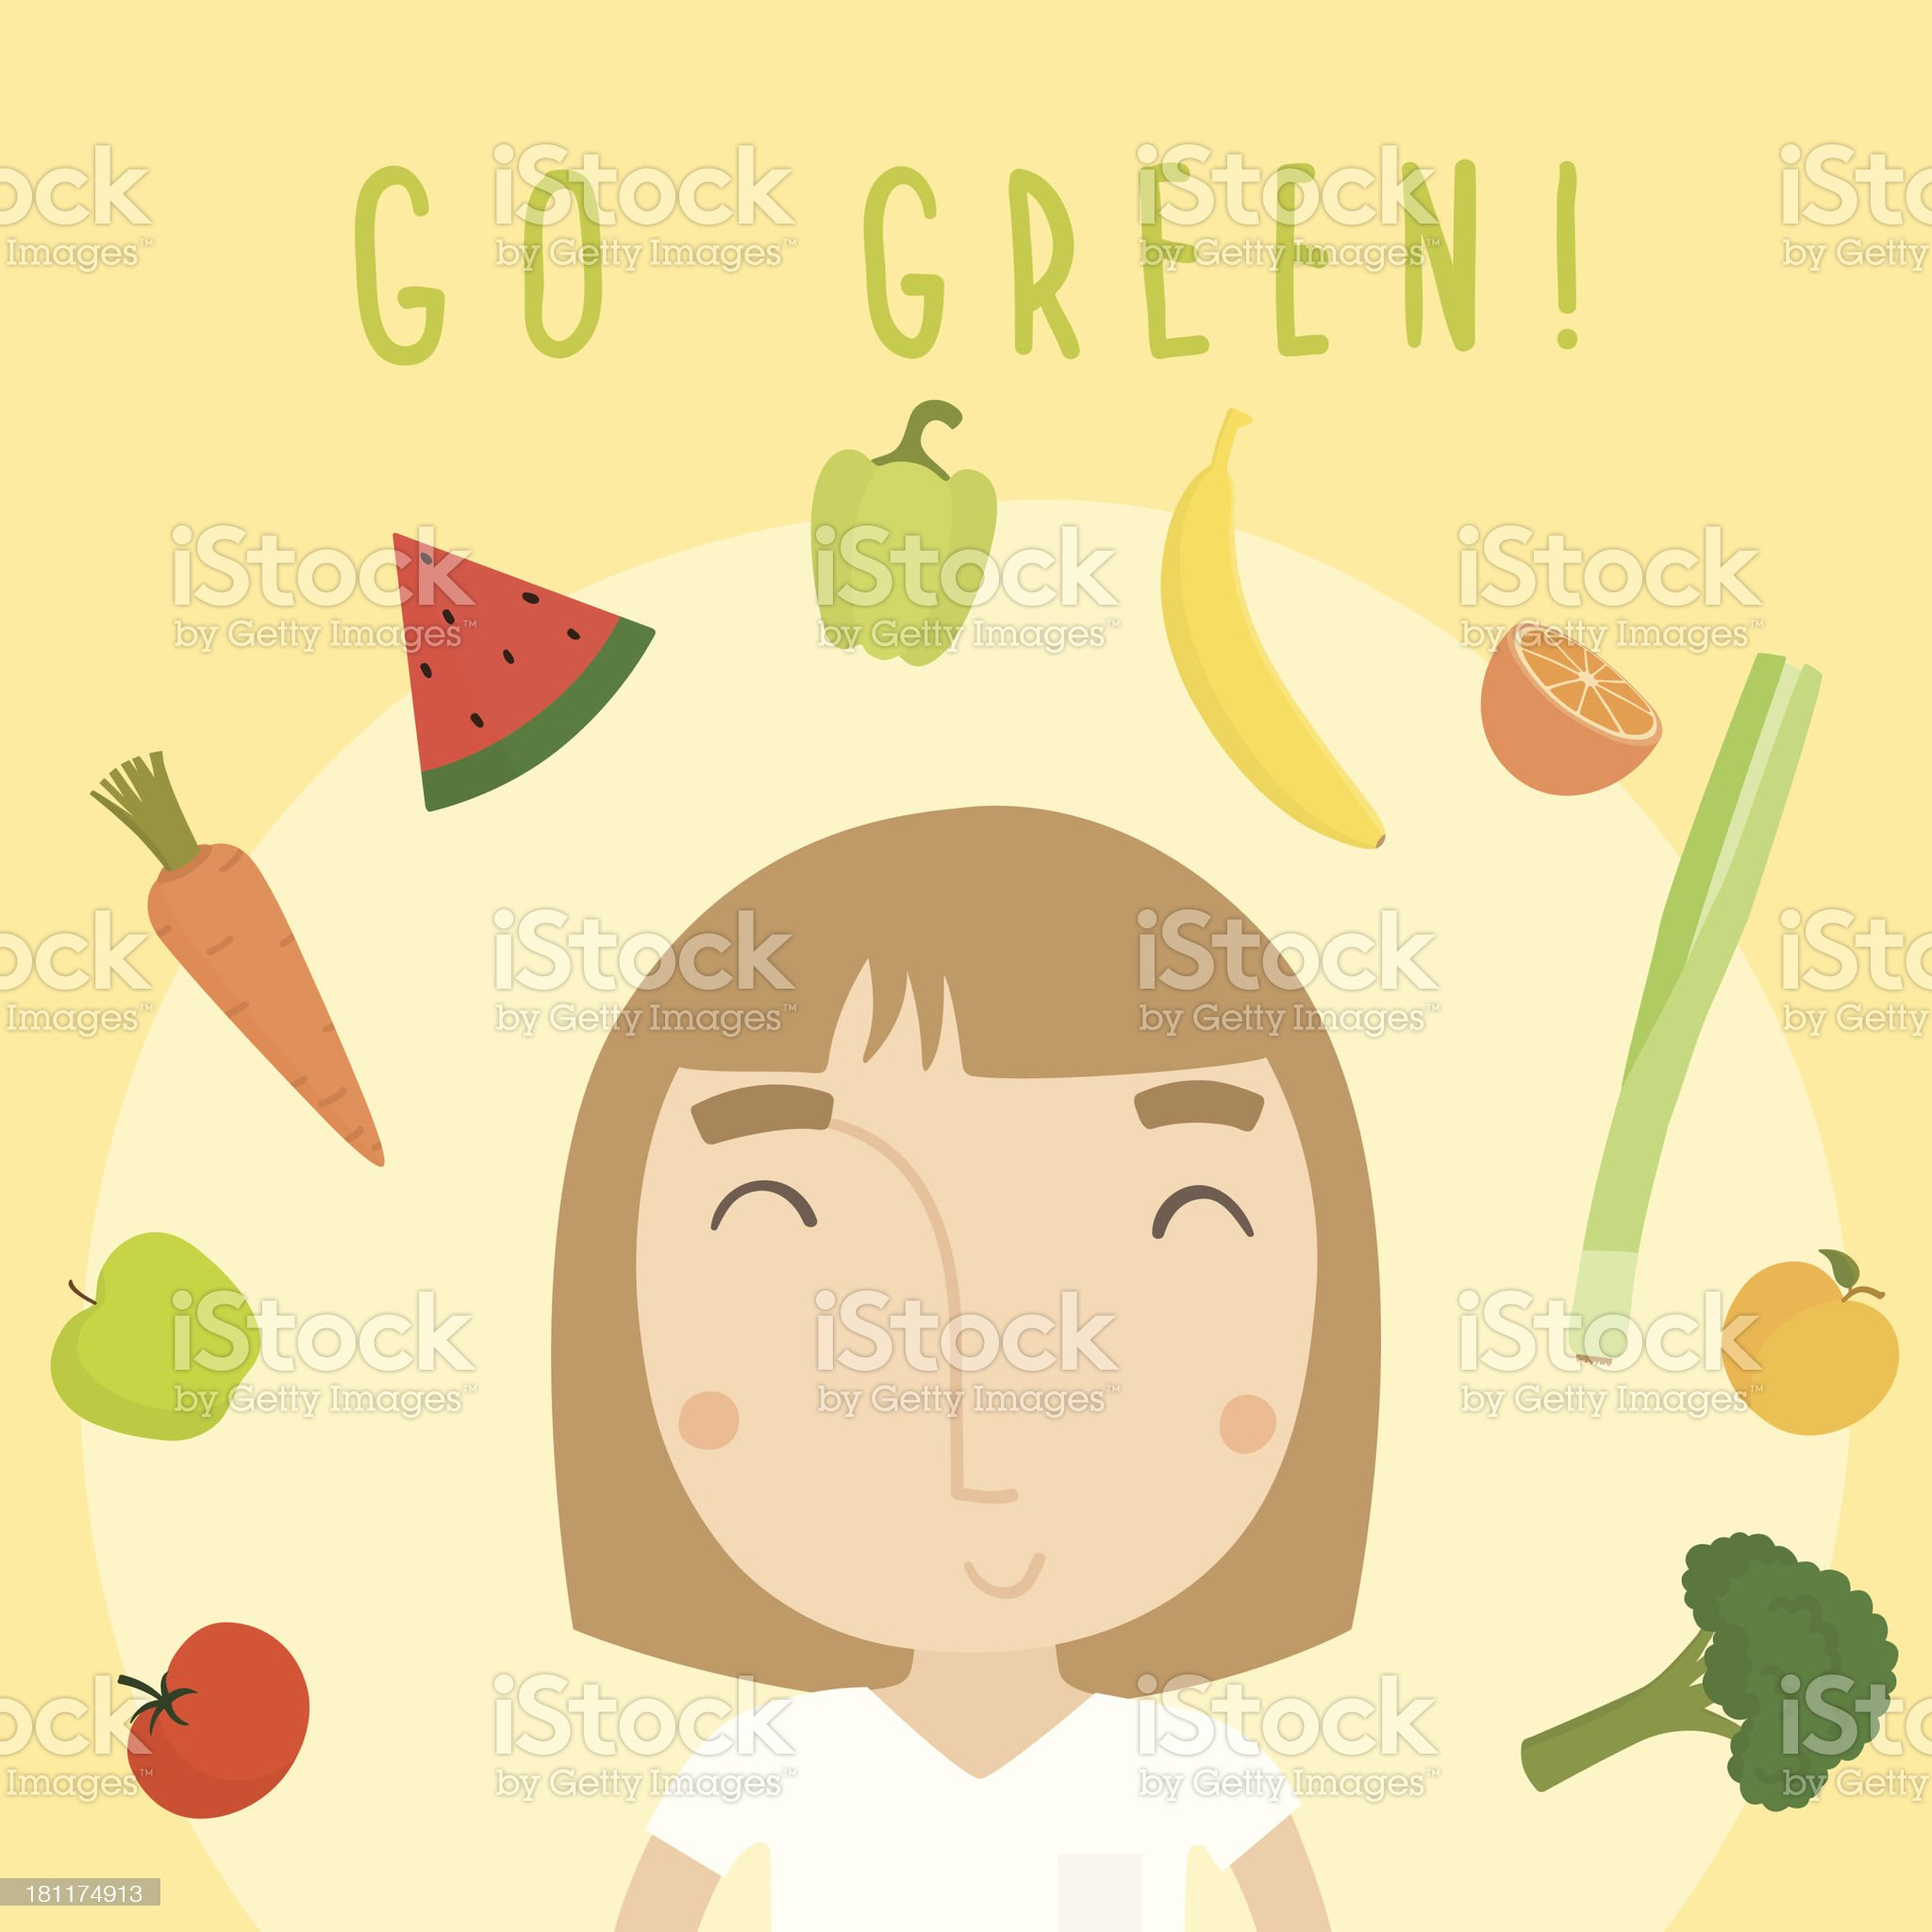 Go green girl and vegetables royalty-free stock vector art